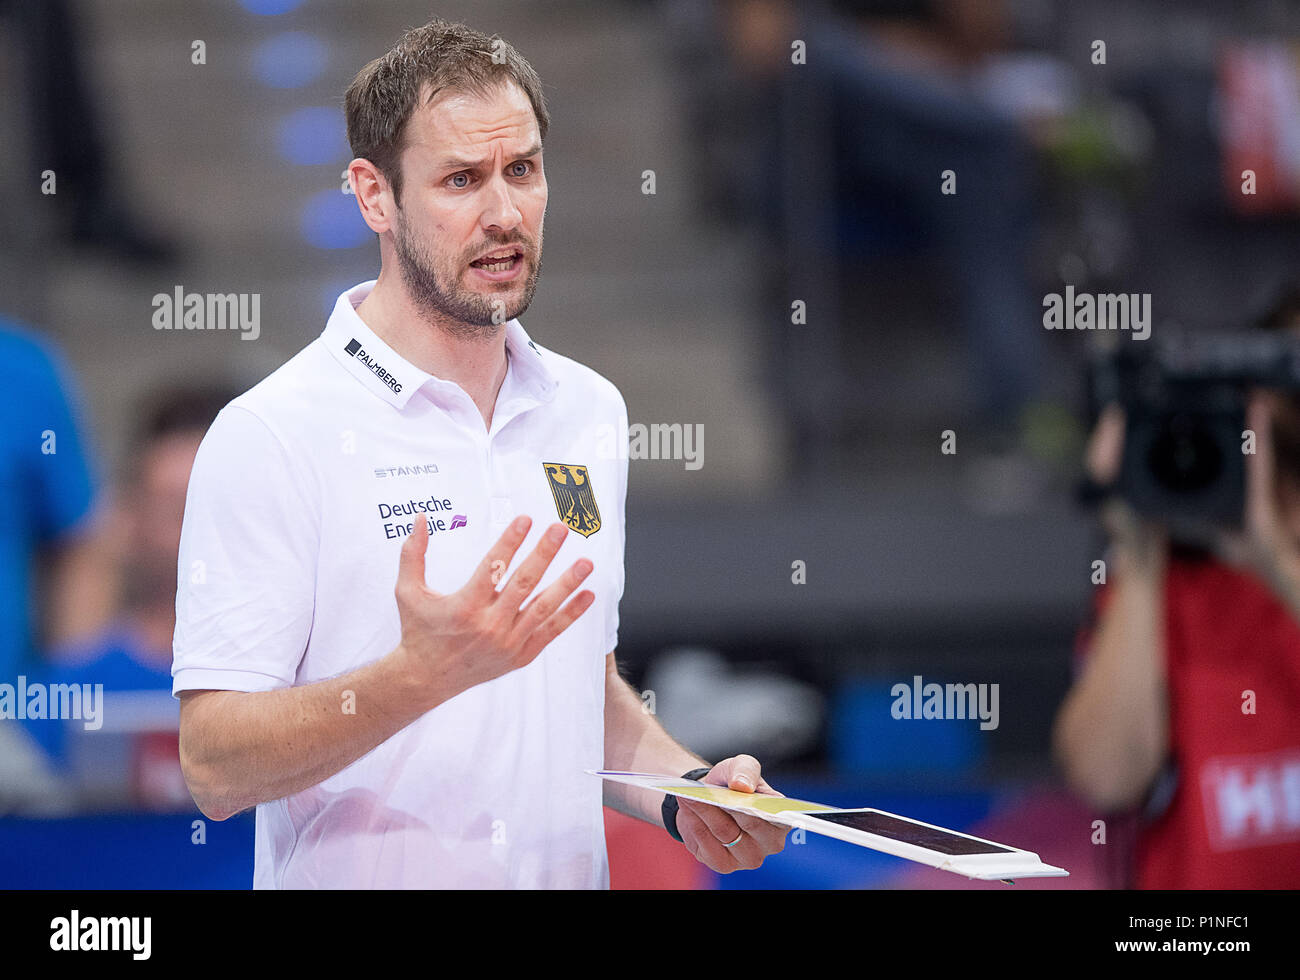 12-june-2018-germany-stuttgart-volleyball-womens-nations-league-match-between-germany-and-china-at-the-porsche-arena-germanys-head-coach-felix-koslowski-at-the-volleyball-nations-league-gesticulates-at-the-sideline-photo-sebastian-gollnowdpa-P1NFC1.jpg